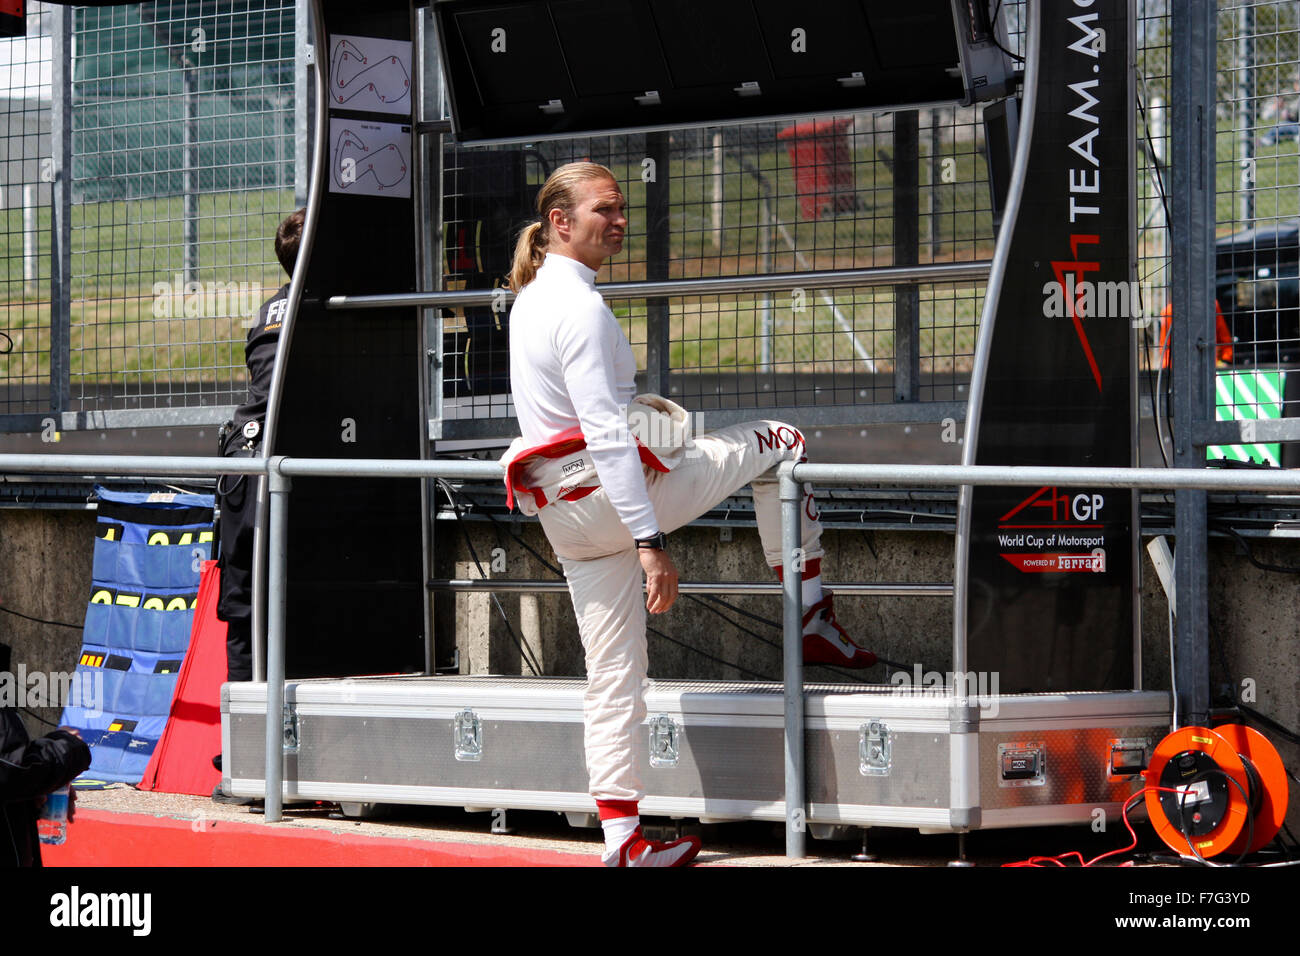 Racing driver hanging out and watching the action at Brands Hatch - Stock Image